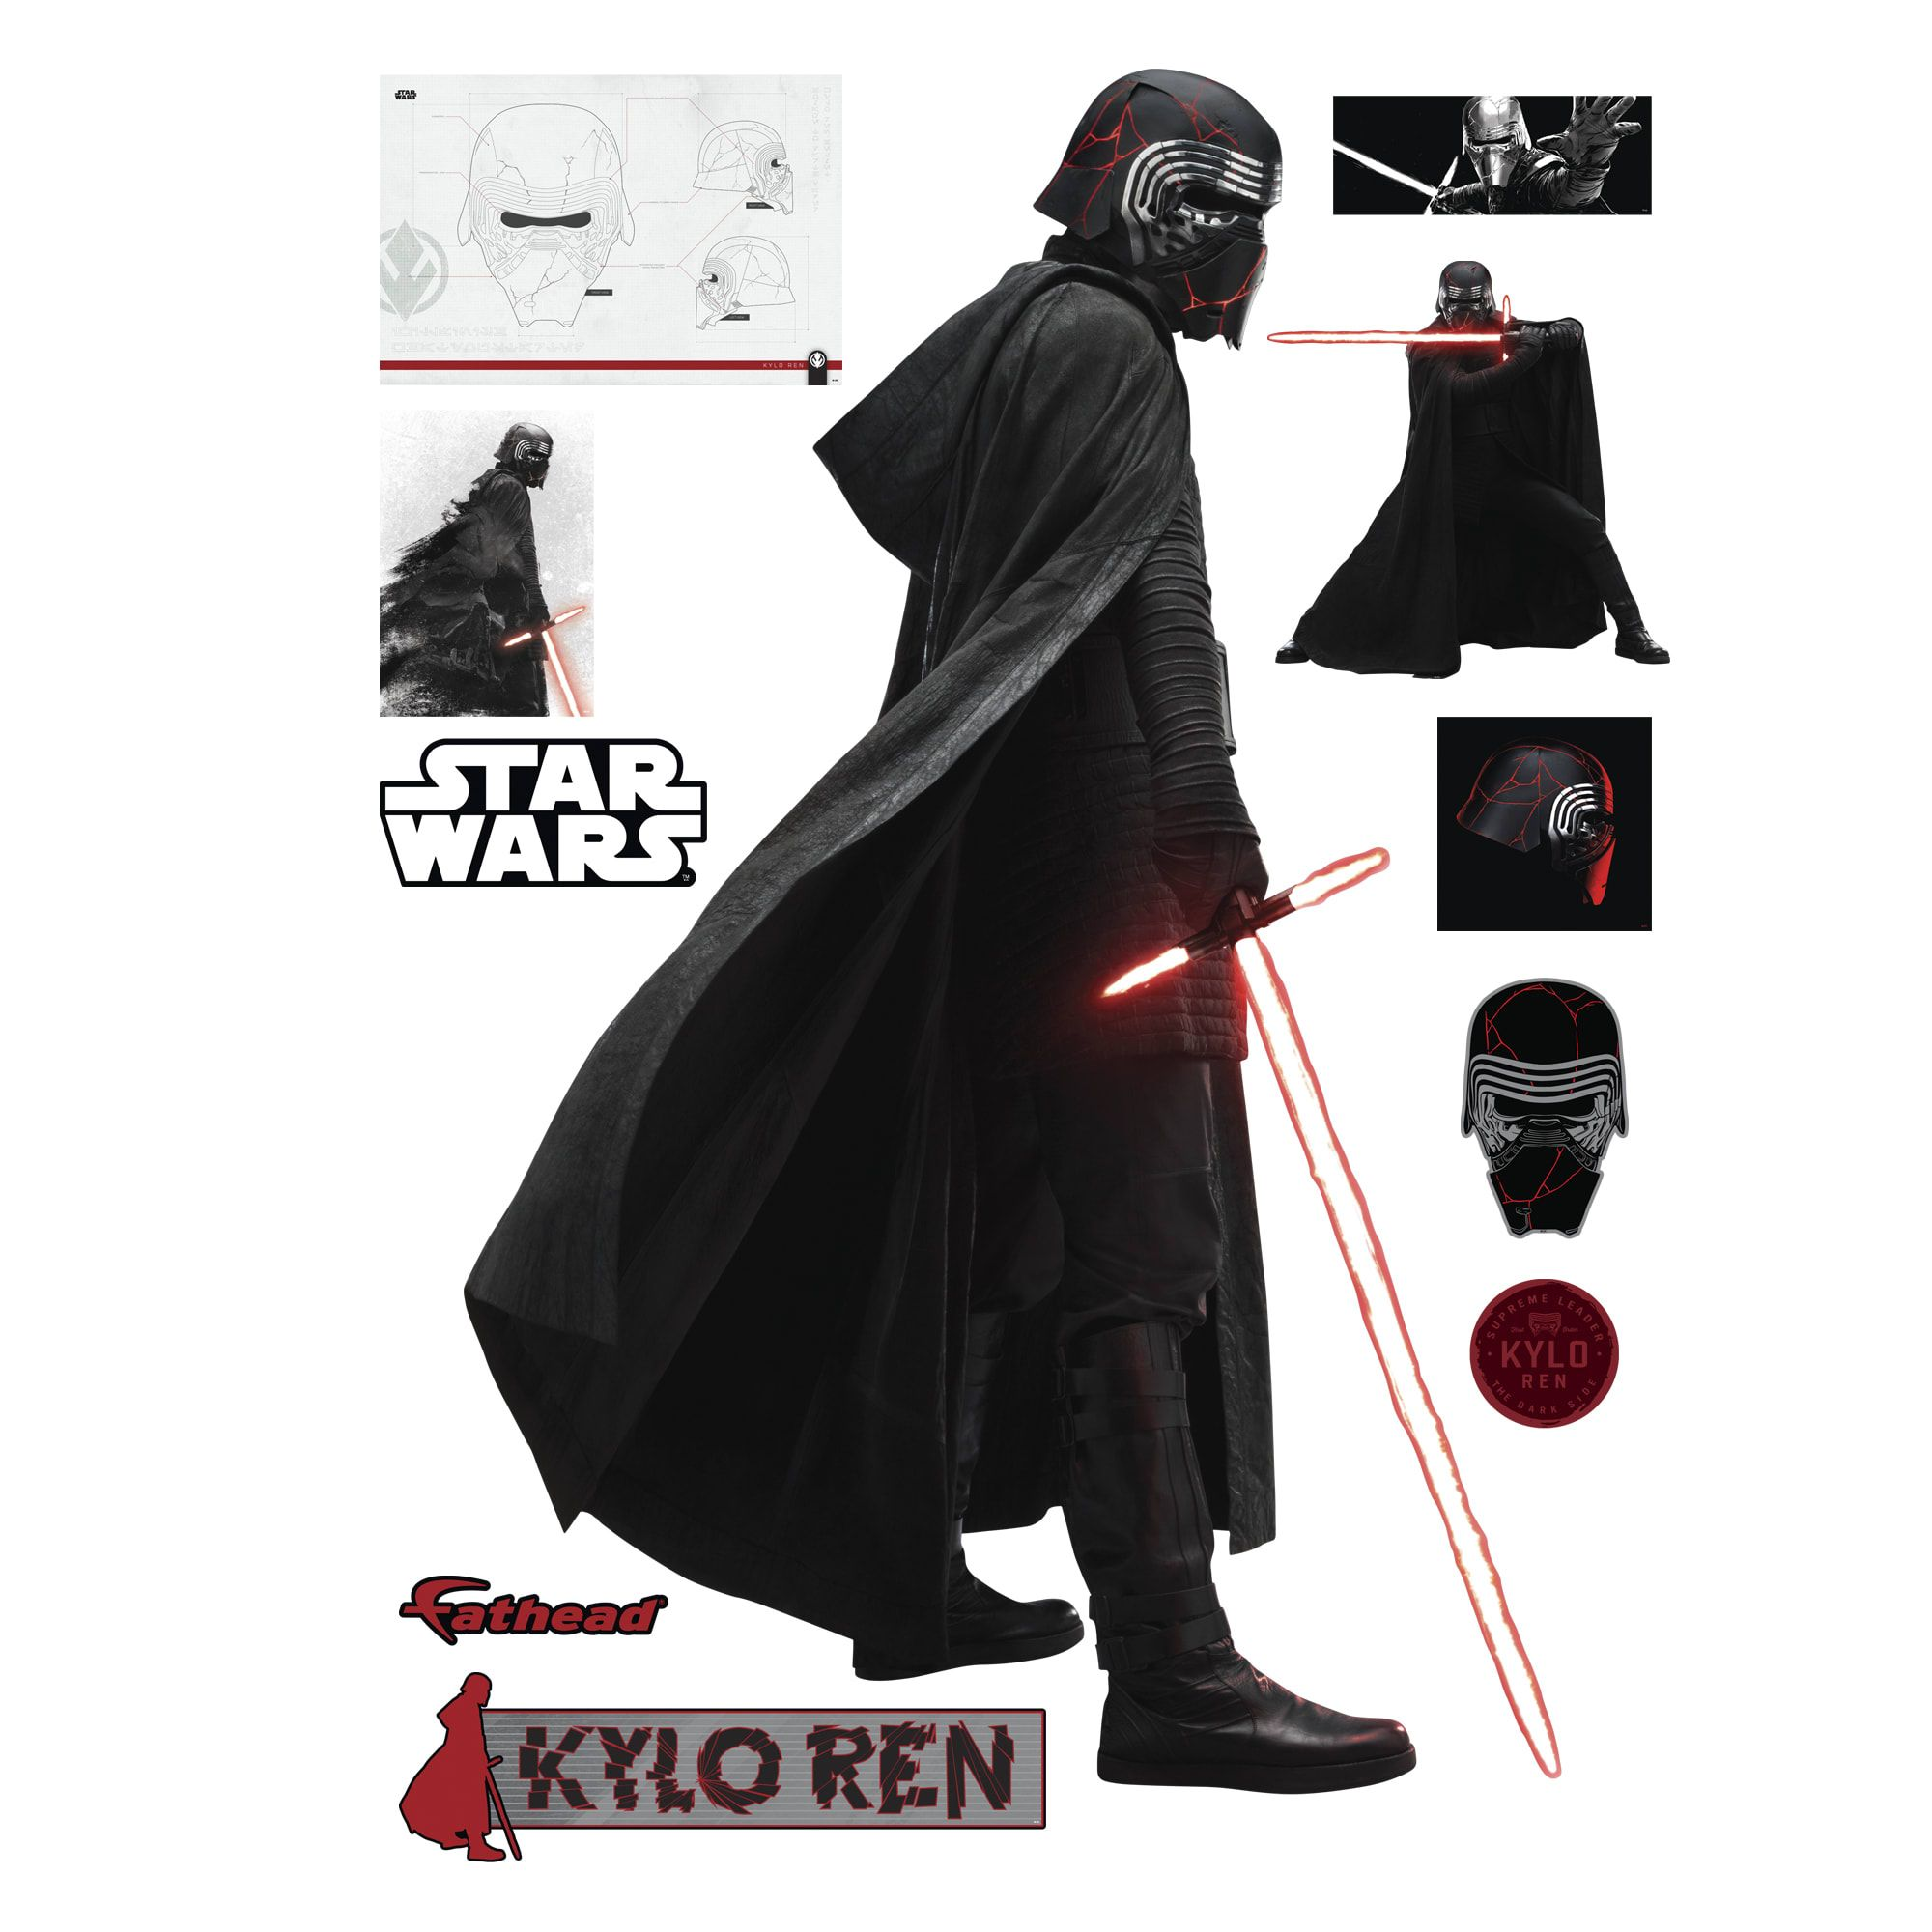 Kylo Ren Star Wars The Rise Of Skywalker Life Size Officially Licensed Removable Wall Decal Ren Star Wars Star Wars Kylo Ren Star Wars